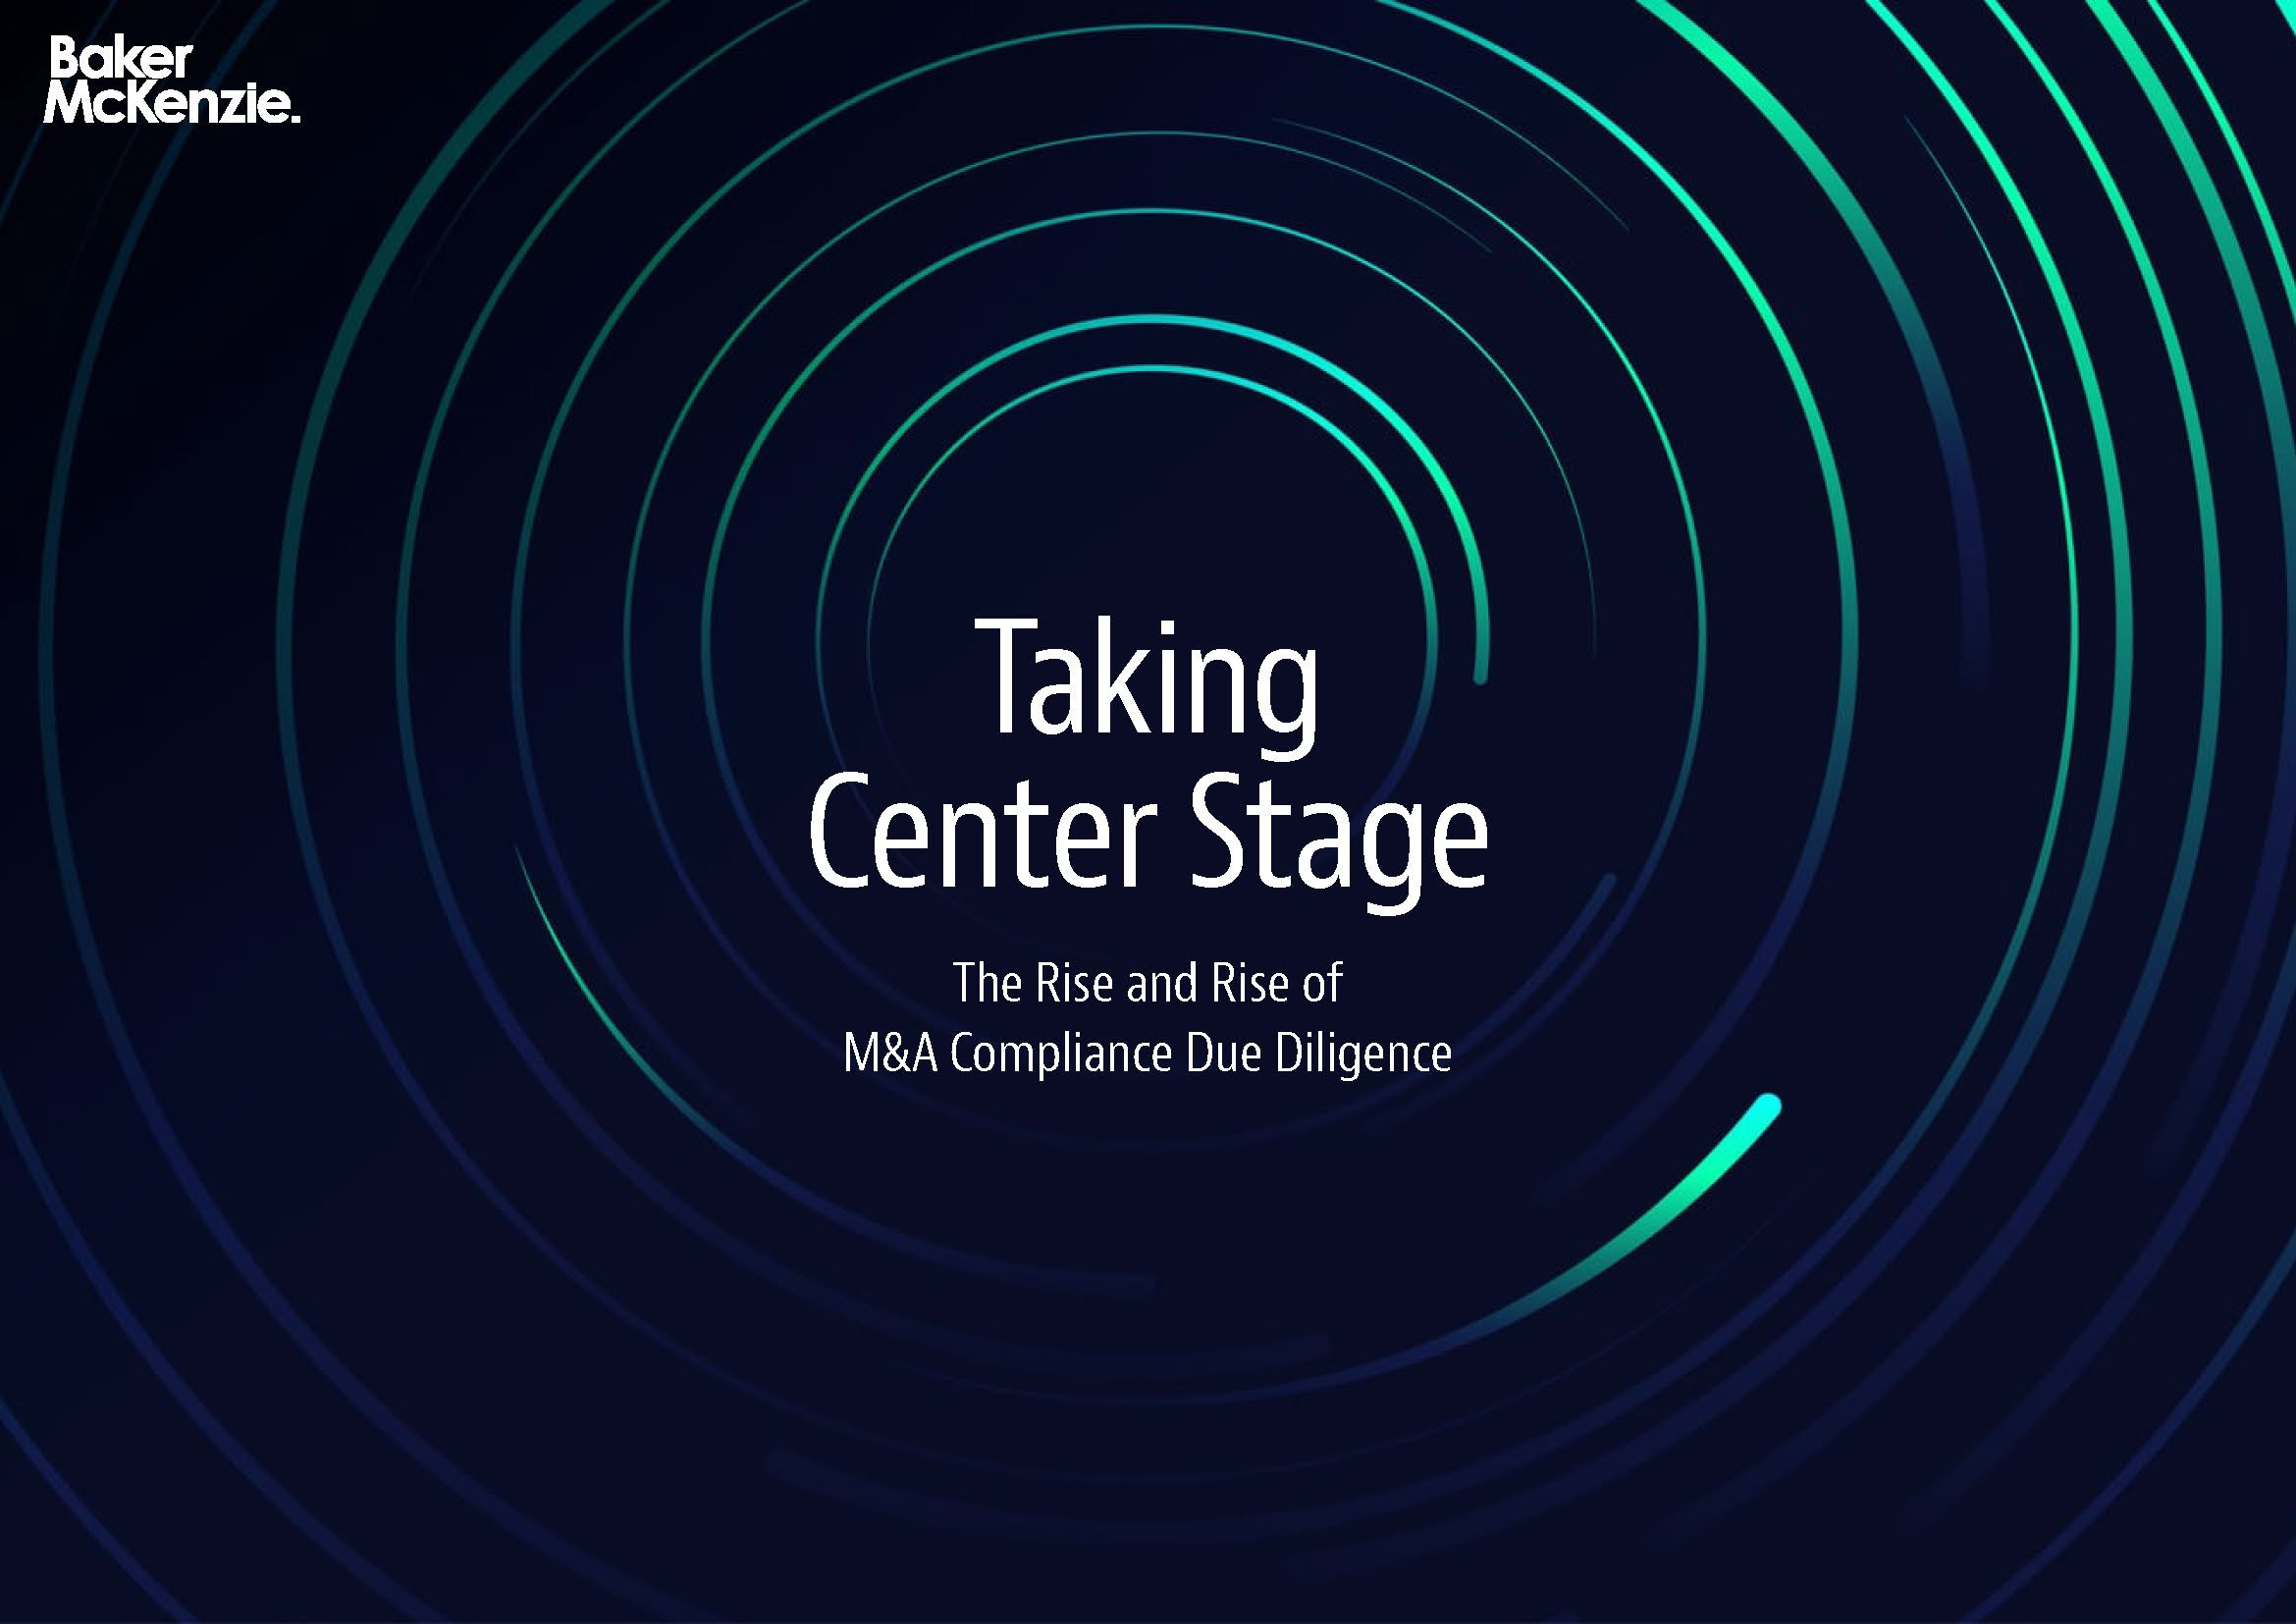 Pages from BakerMcKenzie_Report_Taking_Center_Stage_0